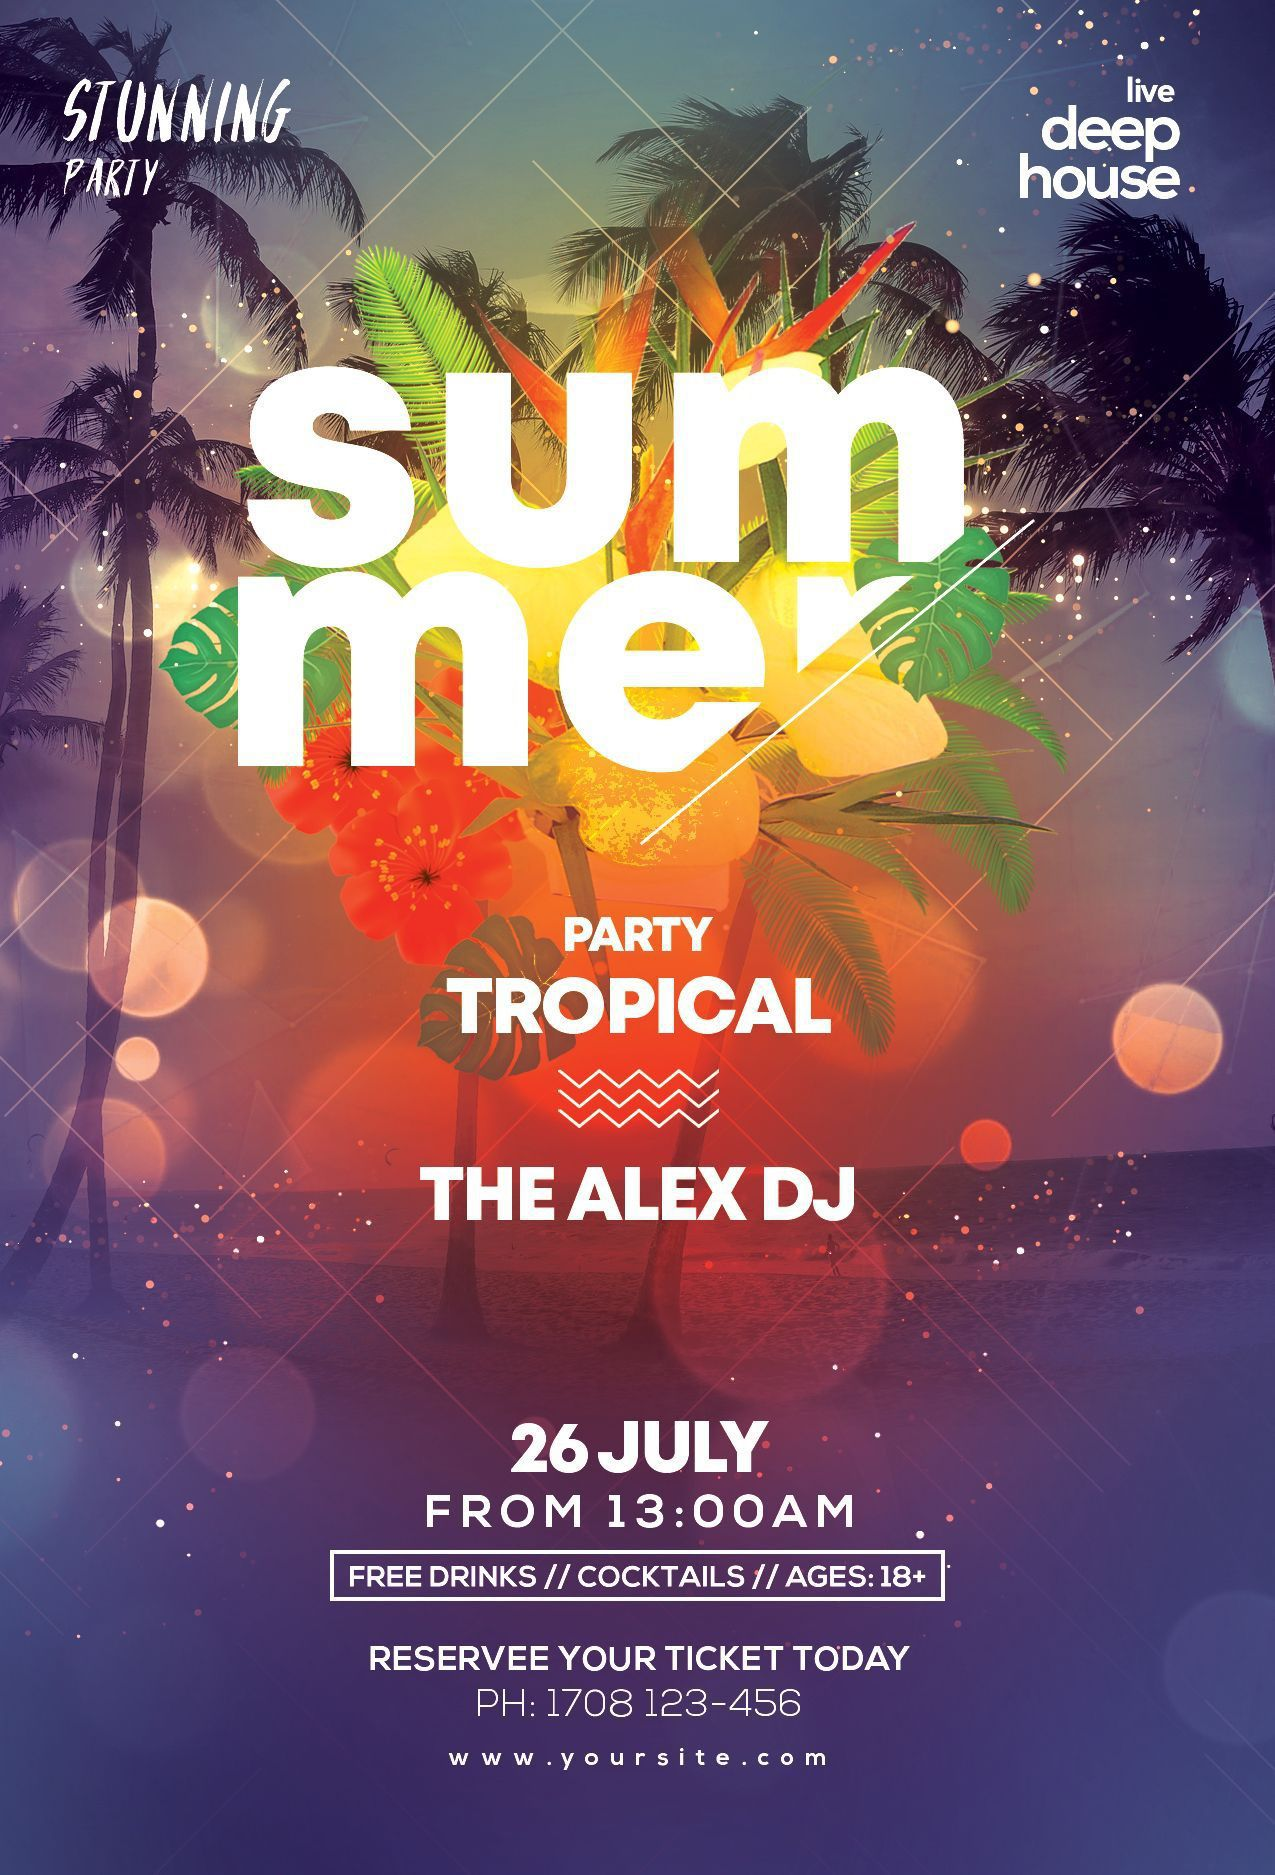 003 Top Summer Party Flyer Template Free Download Photo Full